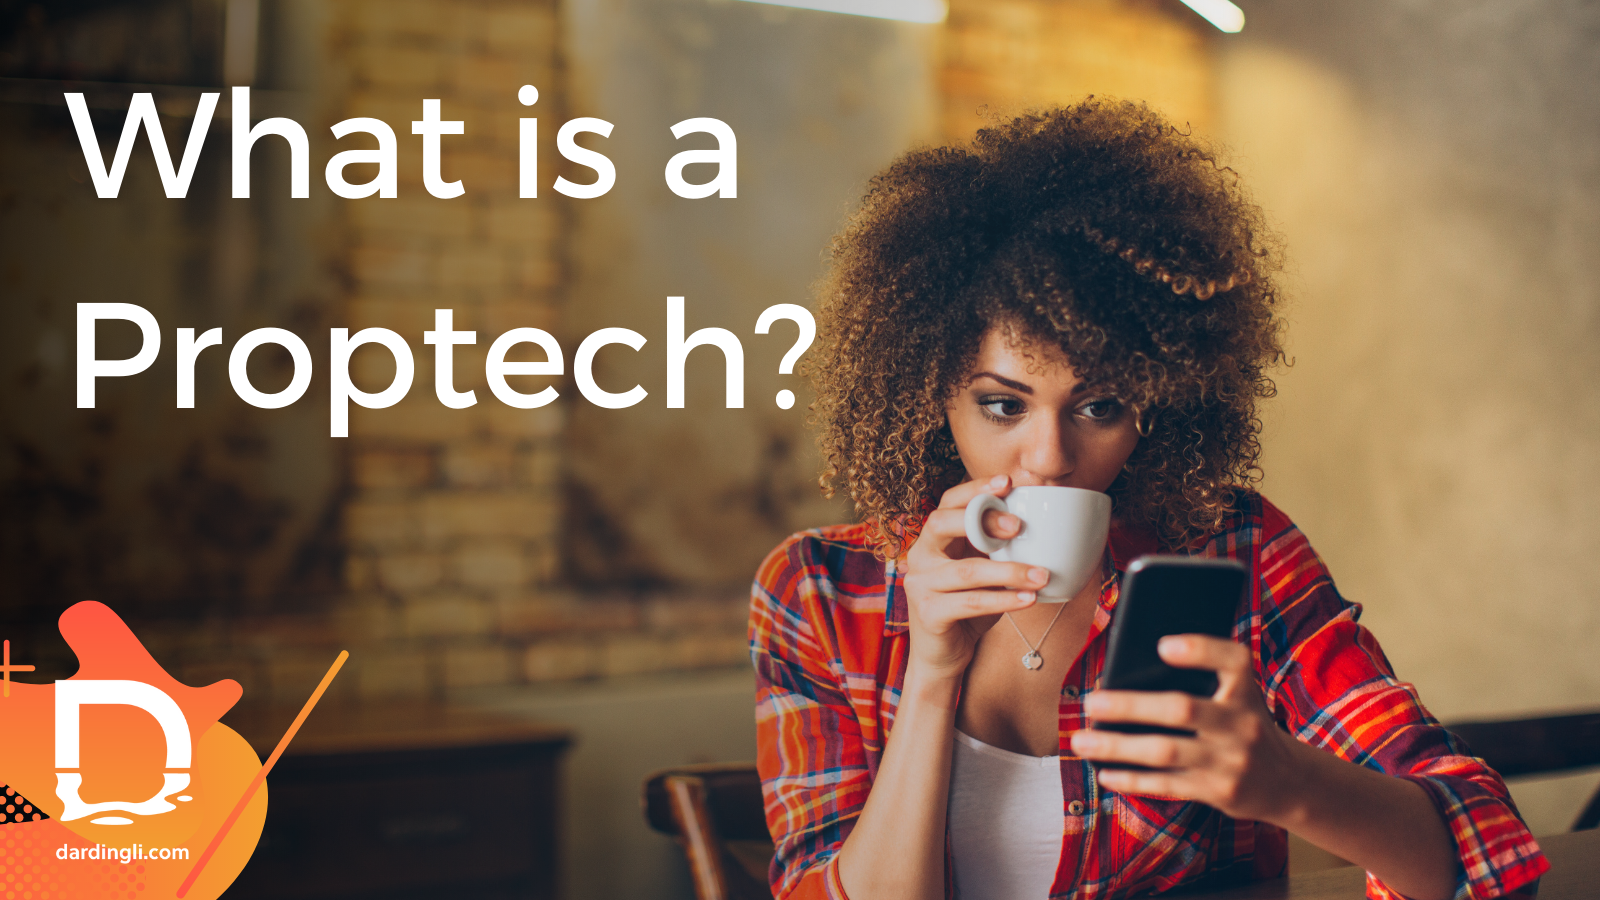 What is a proptech?